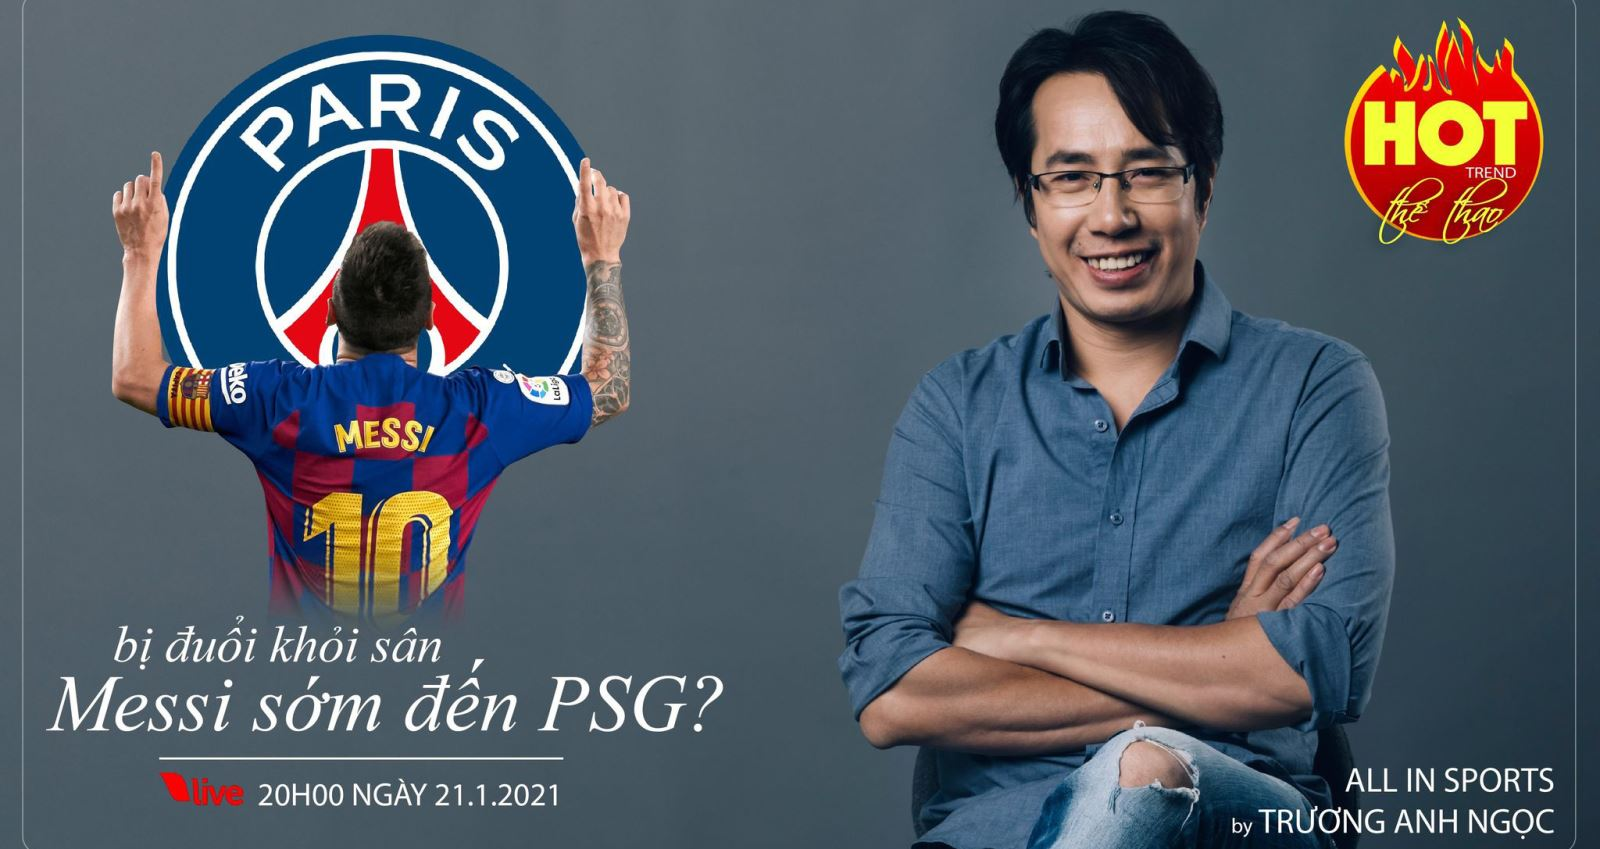 Messi, Lionel Messi, Trương Anh Ngọc, BLV Anh Ngọc, hot trend, Barcelona, Barca